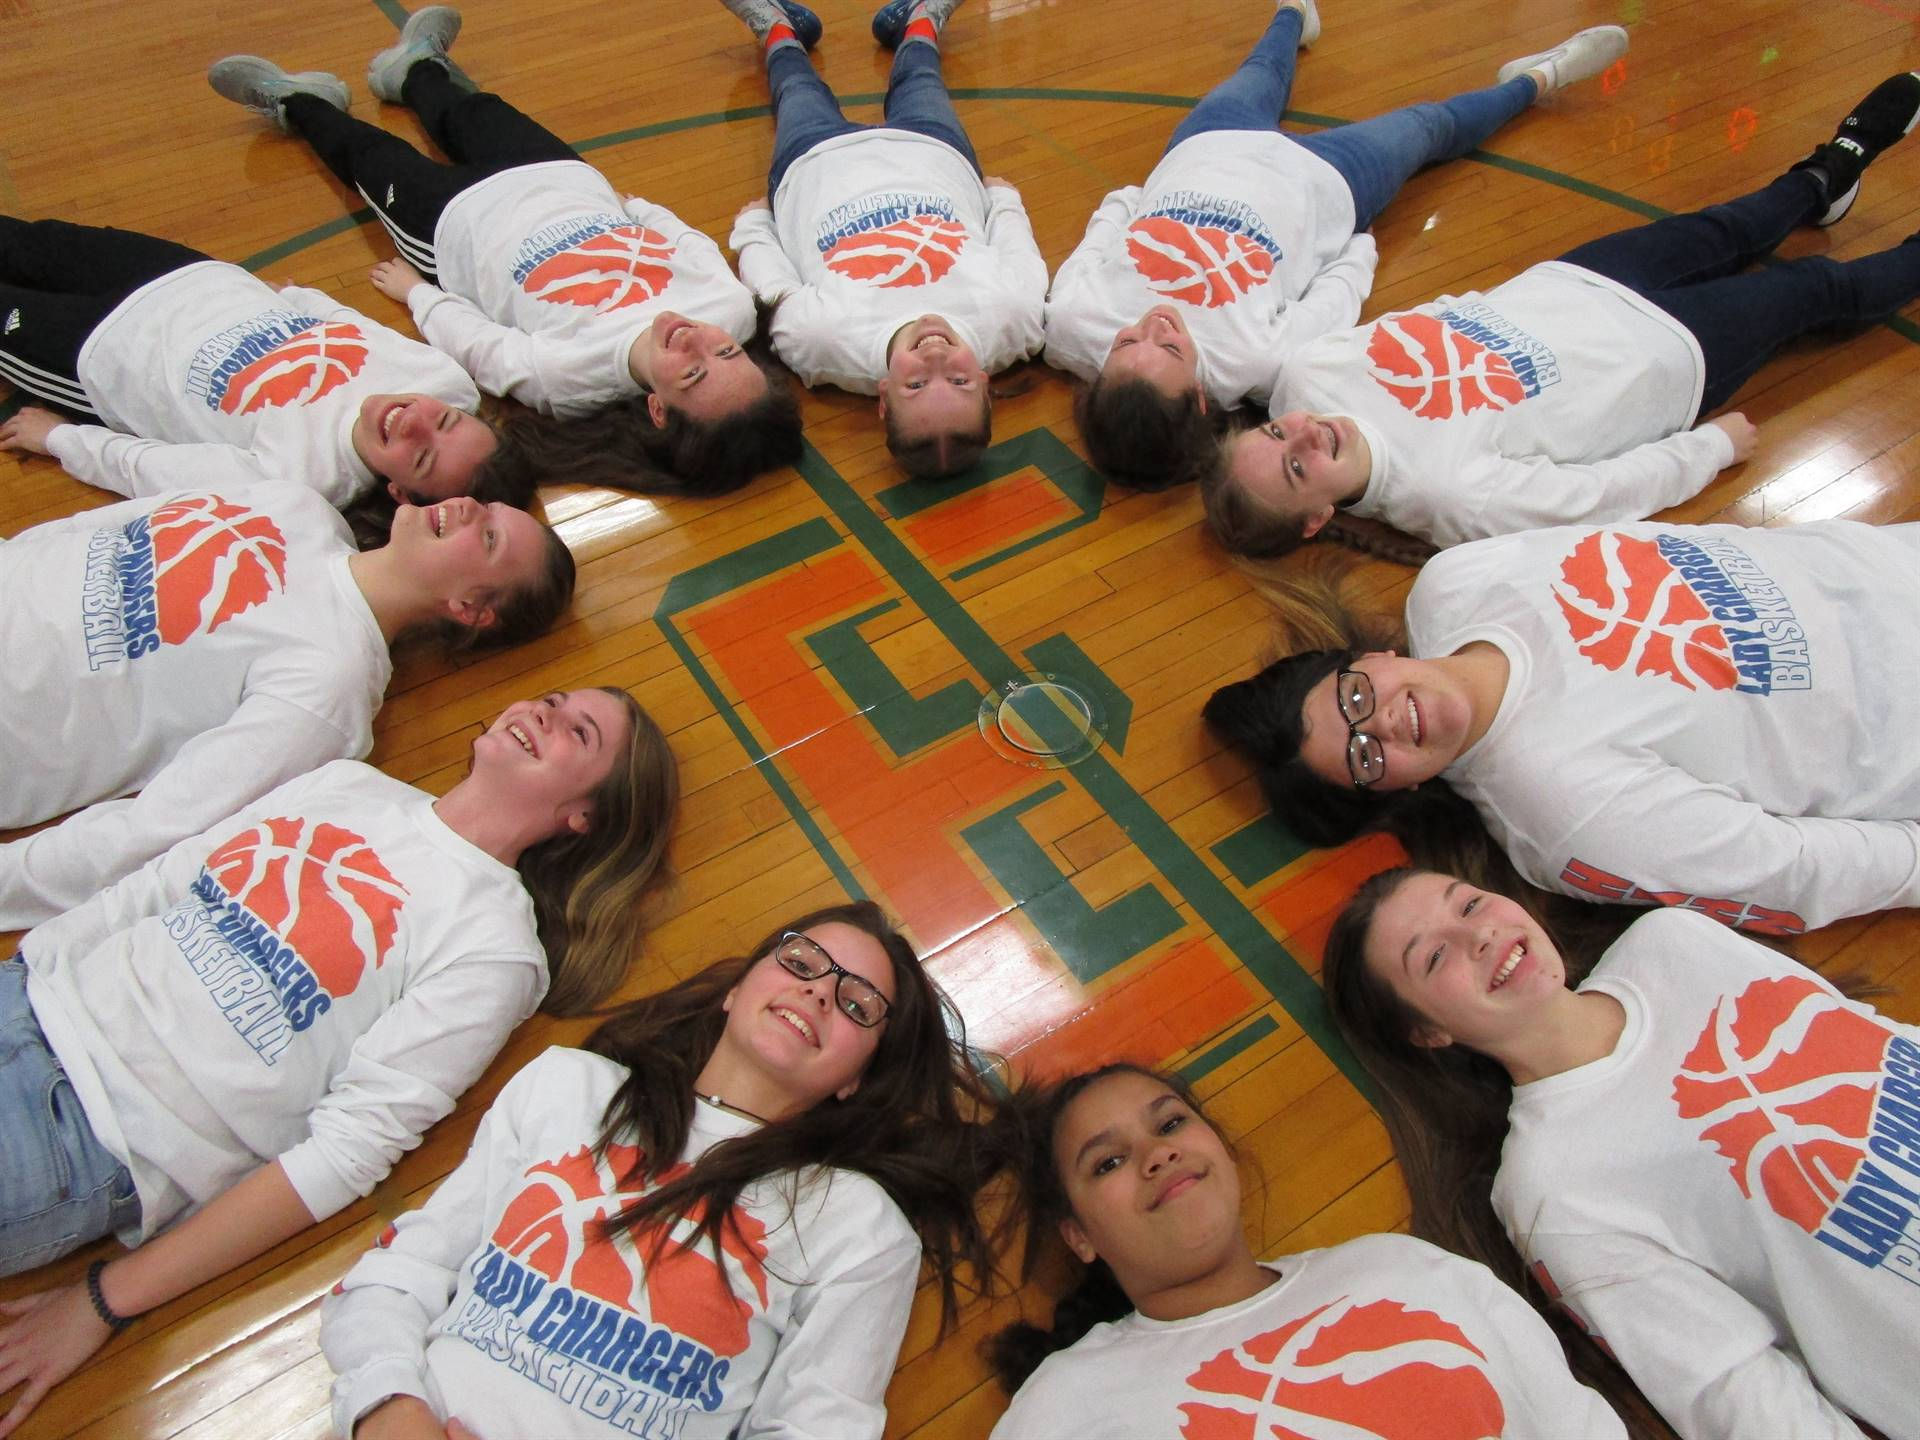 Another Look at the 8th Grade Girls Basketball Team